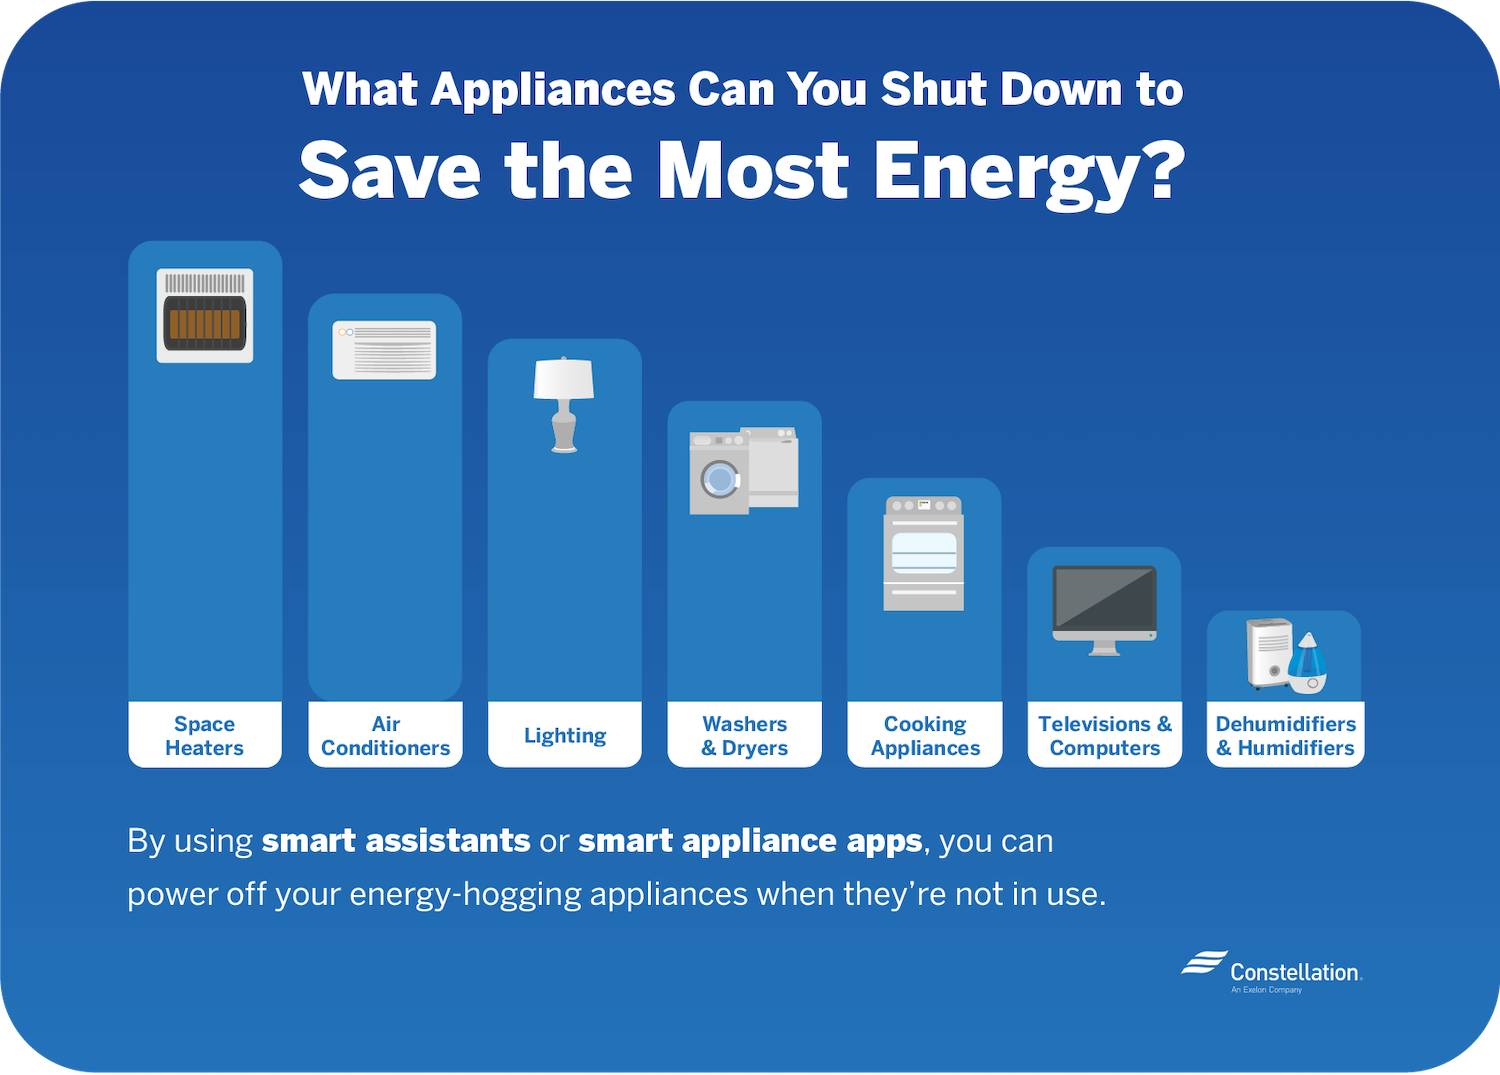 energy saving strategies for smart homes include shutting down appliances like space heaters and air conditioners when not in use